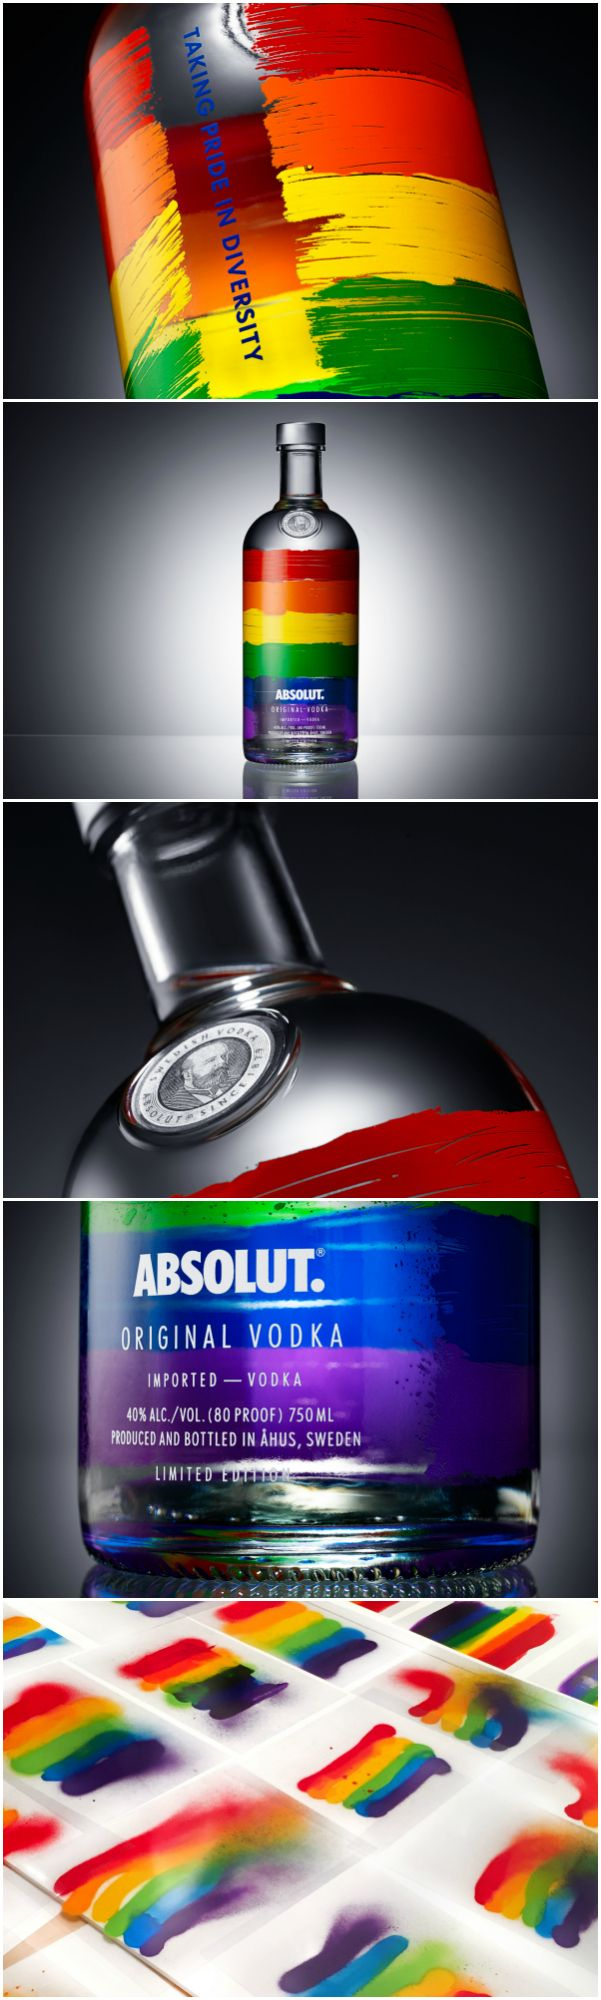 Absolut Rainbow Edition Building A Strong Relations With The Lgtb